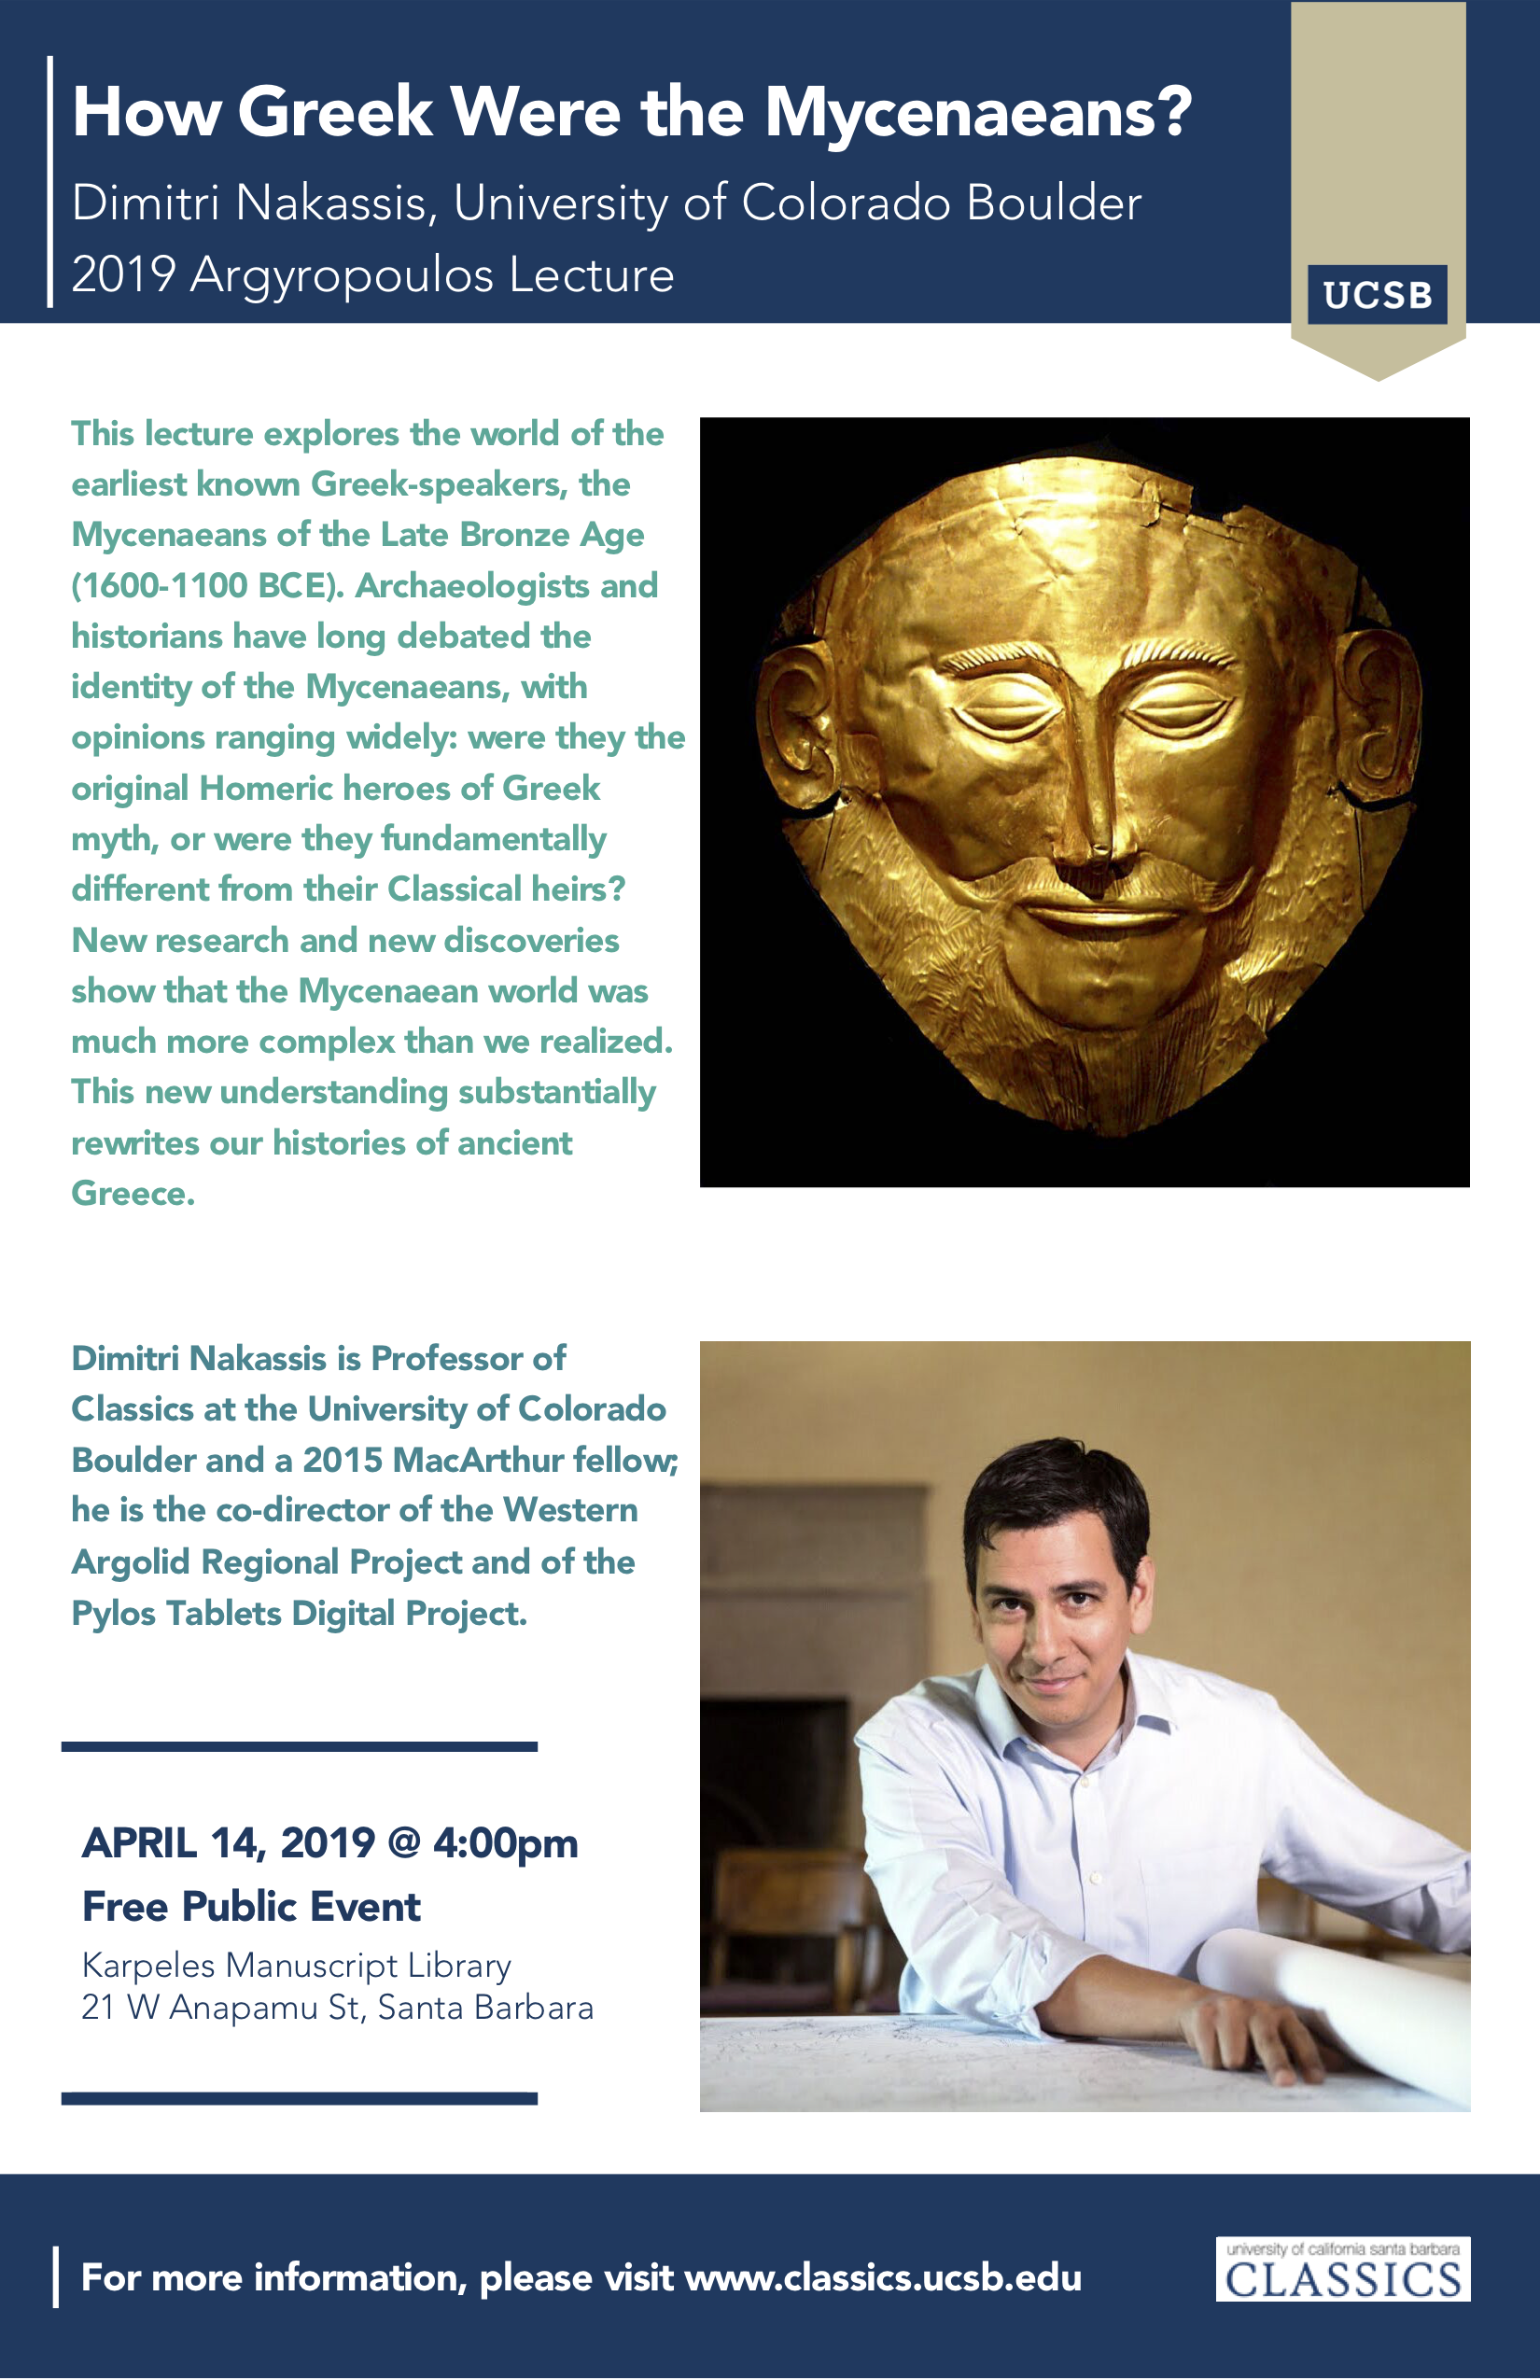 "2019 Argyropoulos Lecture: Dimitri Nakassis (University of Colorado Boulder), ""How Greek Were the Mycenaeans?"" @ Karpeles Manuscript Library"